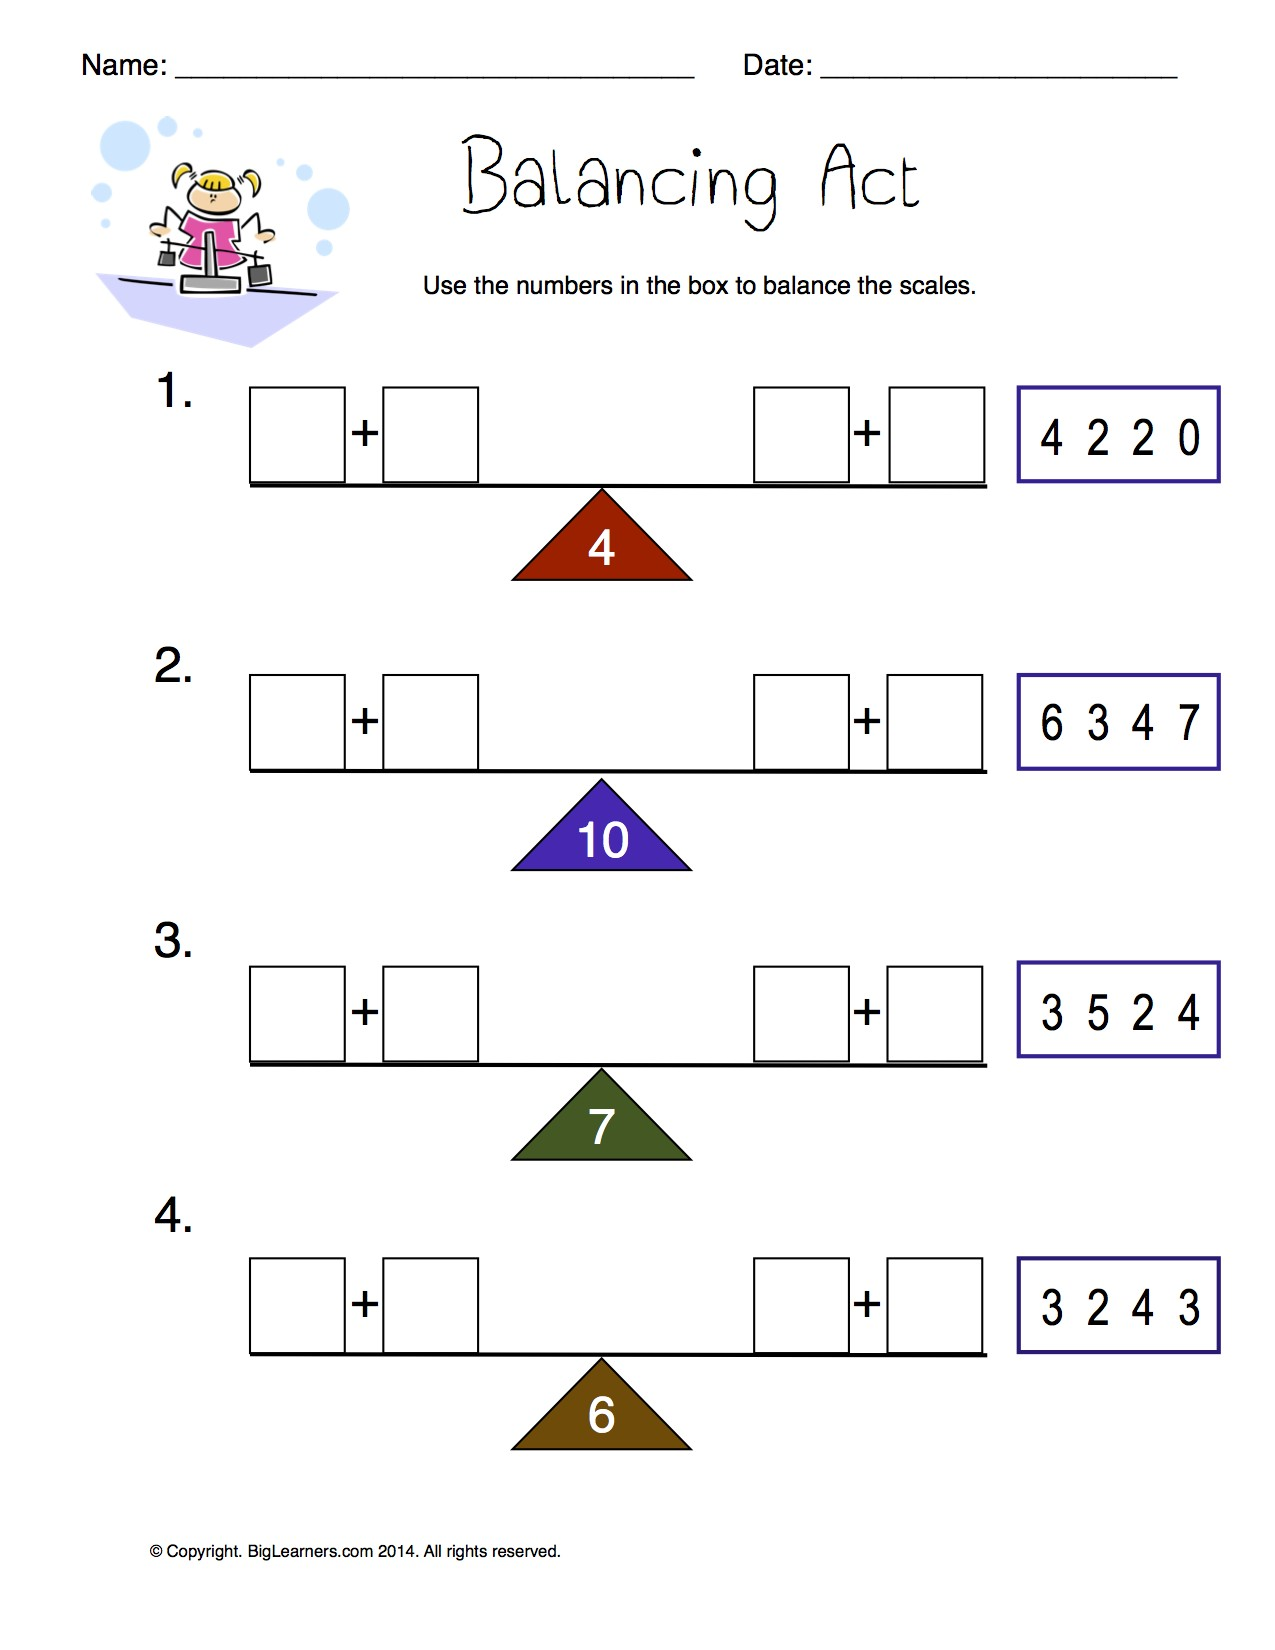 Worksheets Balancing Act Worksheet Answers balancing act worksheet answers no downloads